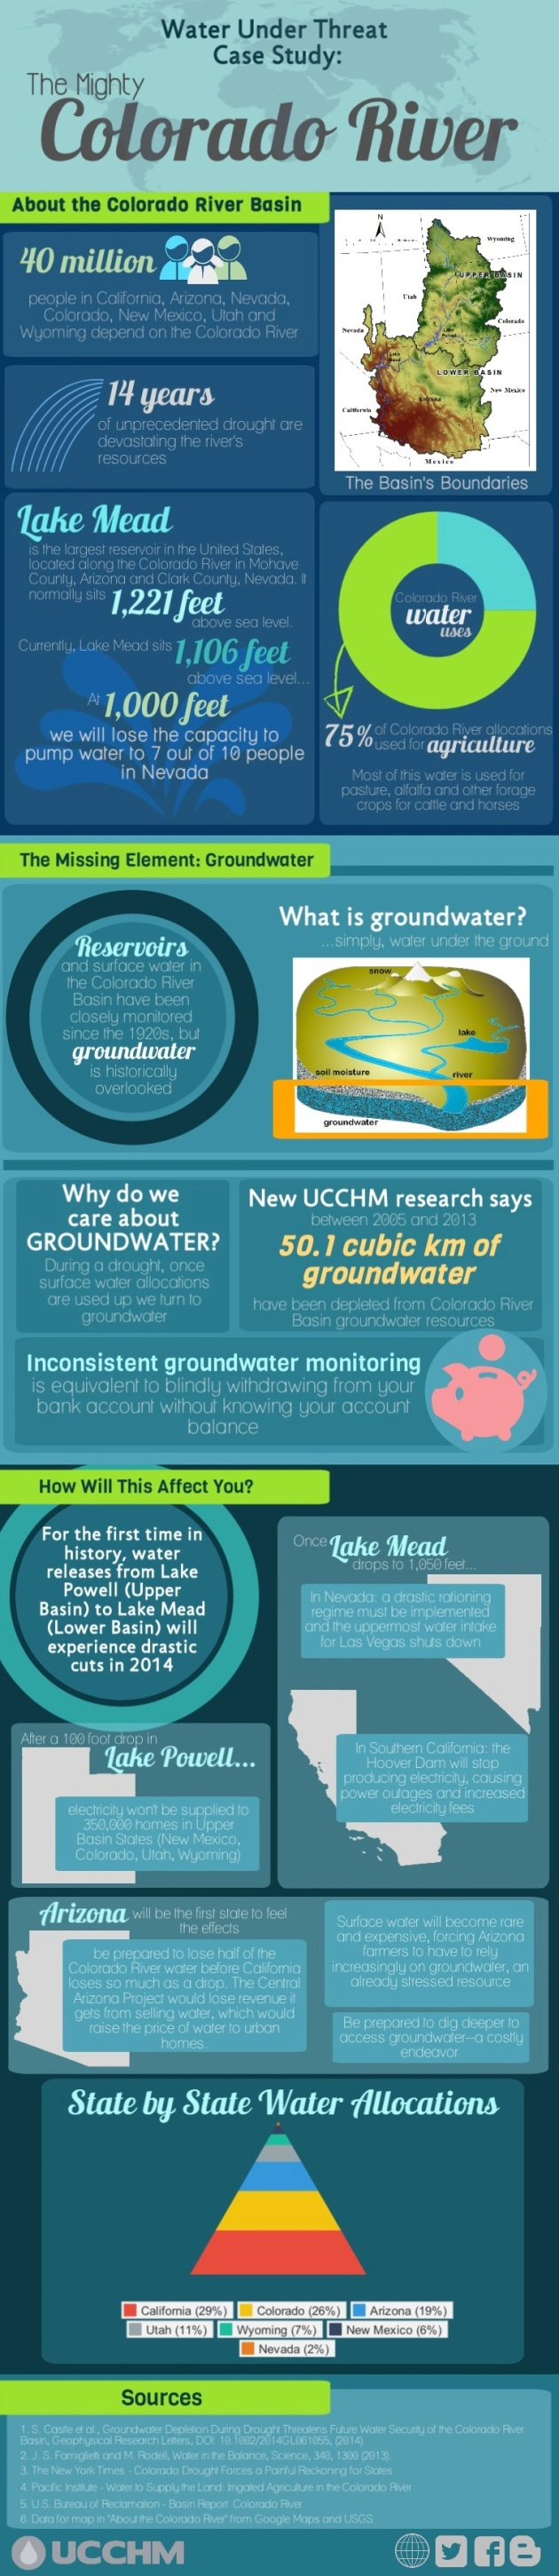 Colorado River Basin Groundwater Depletion infographic to support our paper by Castle et al. (2014) in Geophysical Research Letters. Graphic by Callie Brazil, UC Irvine, Earth System Science.